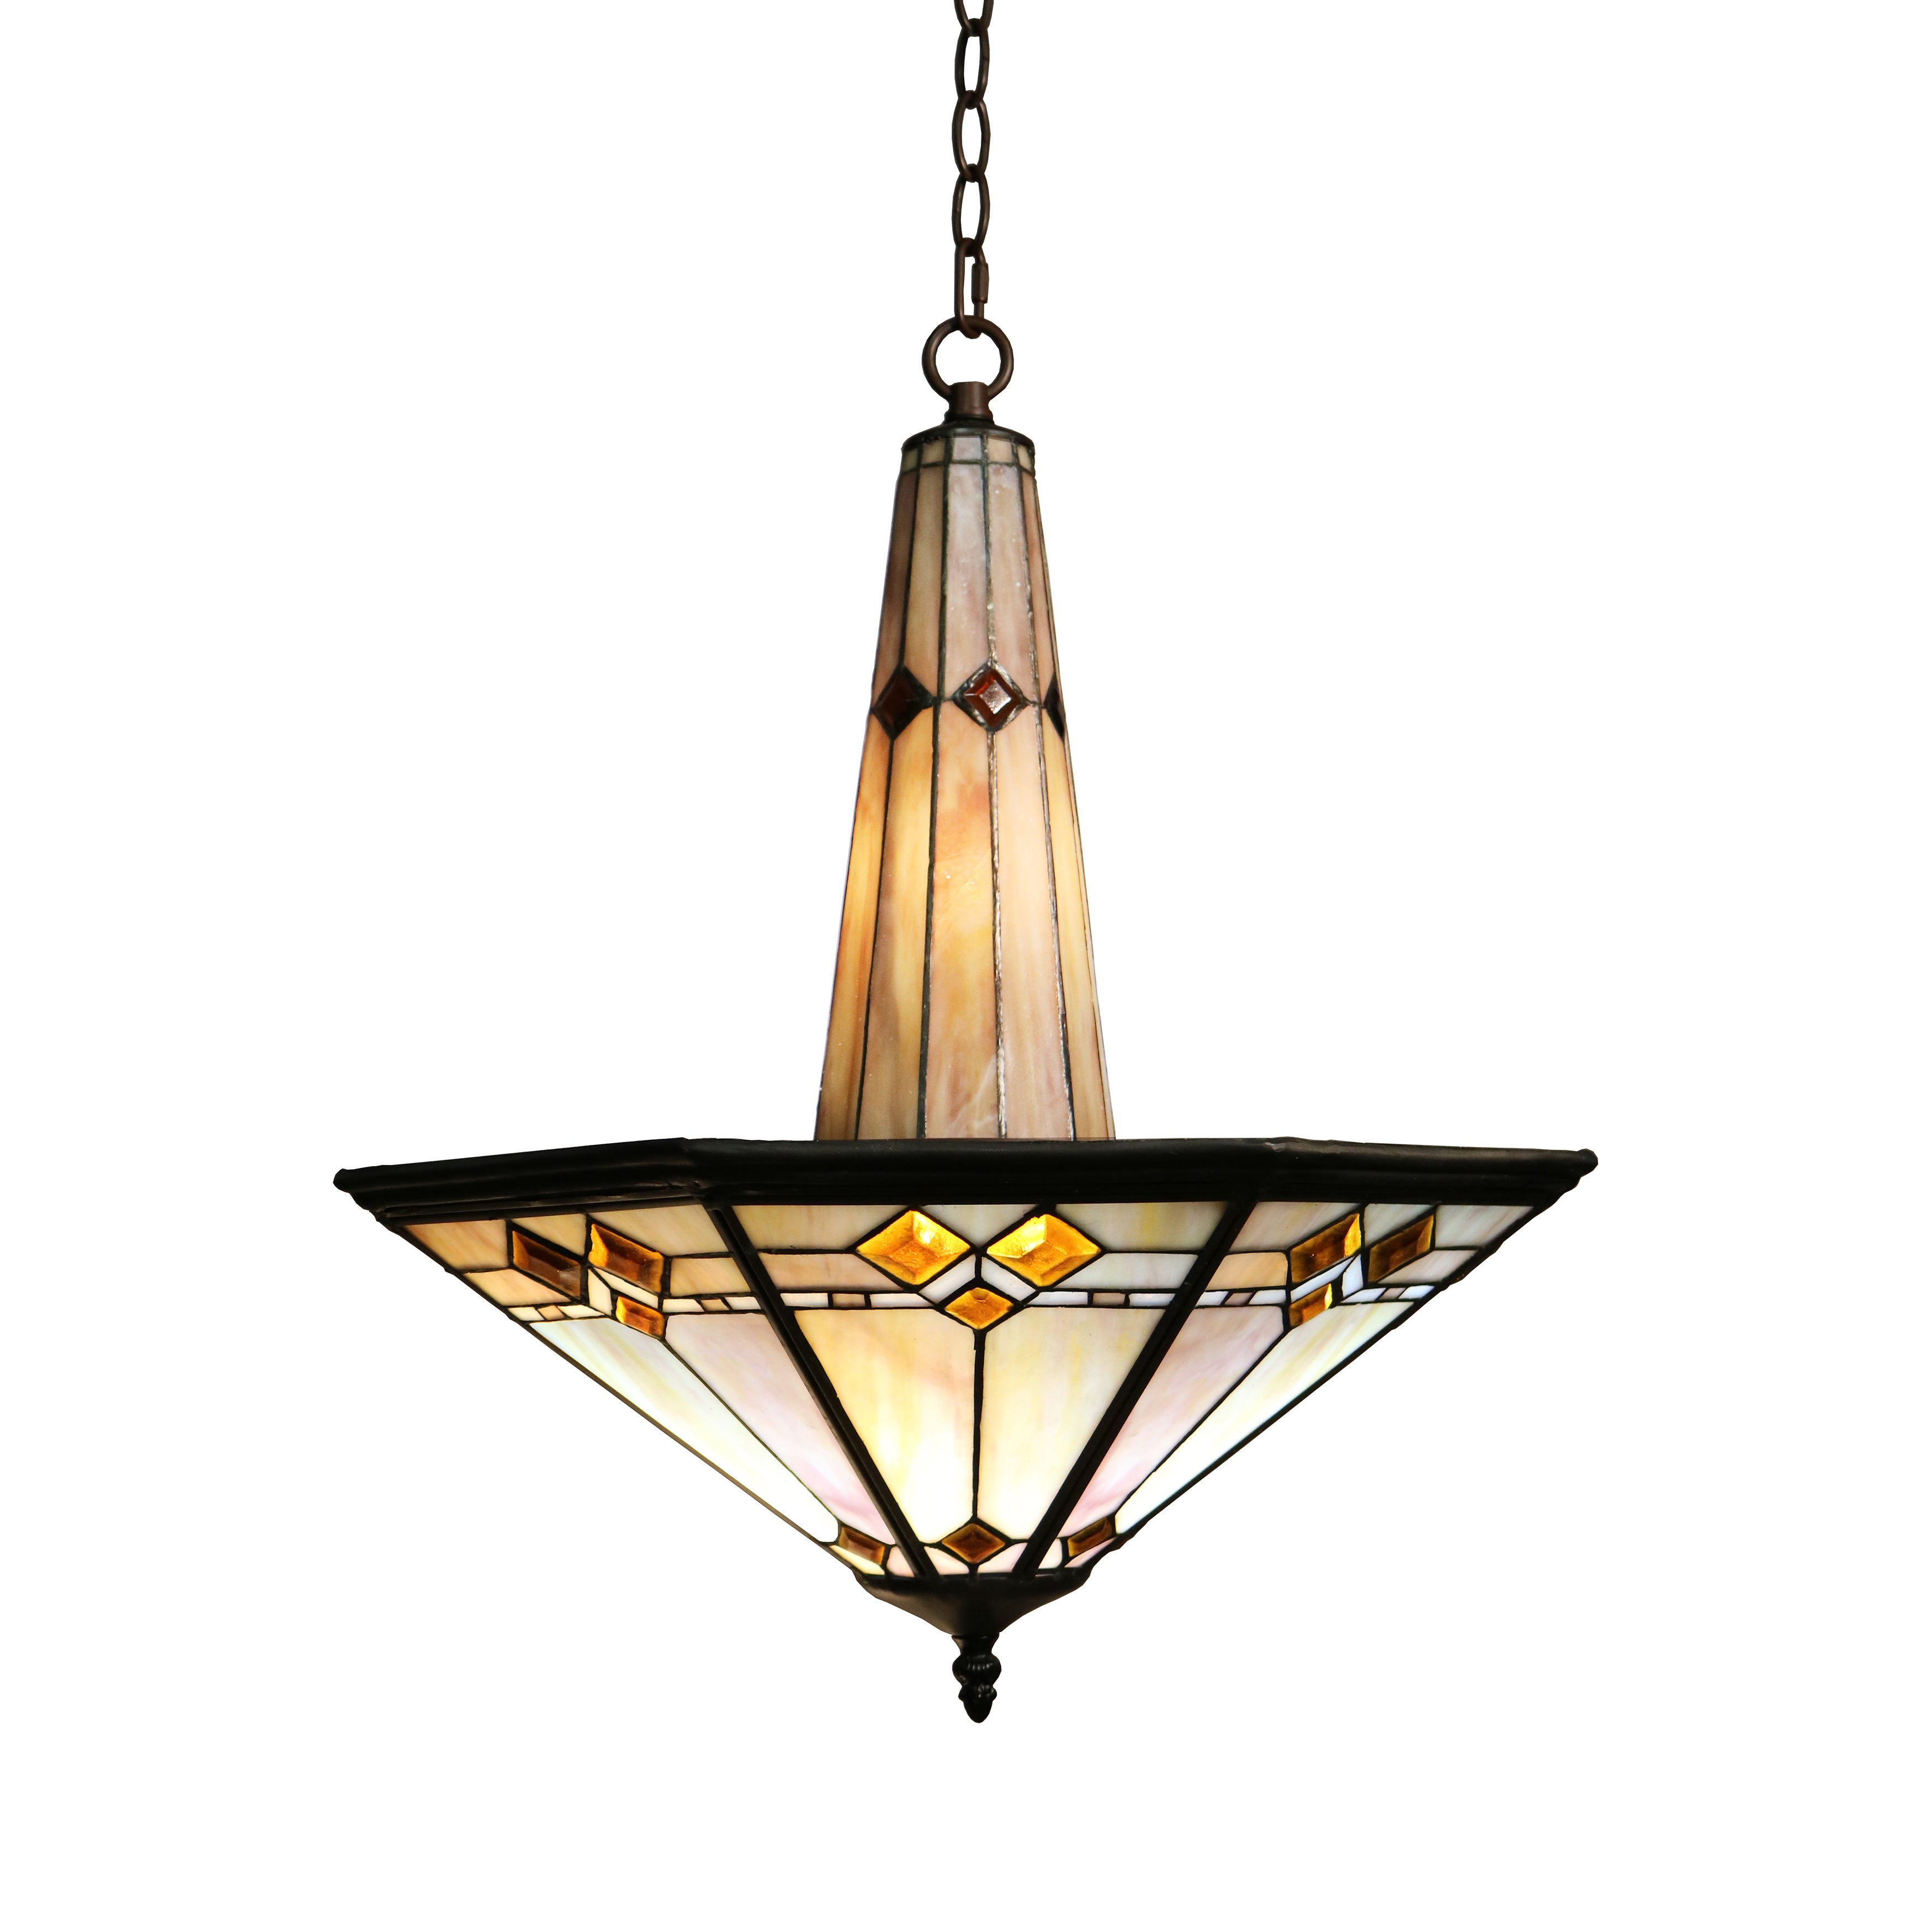 craftsman chandelier maxim calistoga capitol inspiration lighting outdoor wall light style shop mission